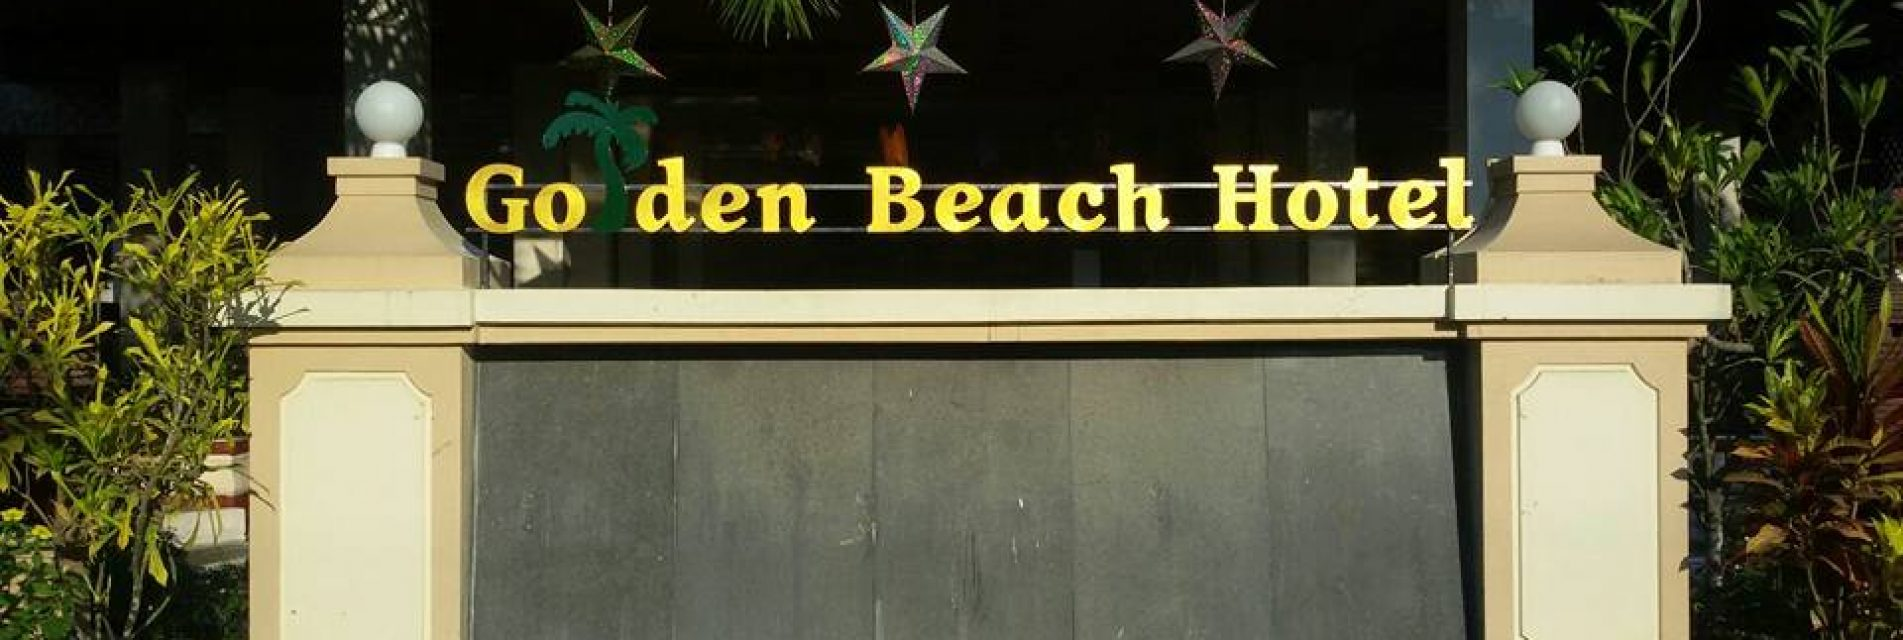 Golden beach hotel chaung thar beach design hub for Golden beach design